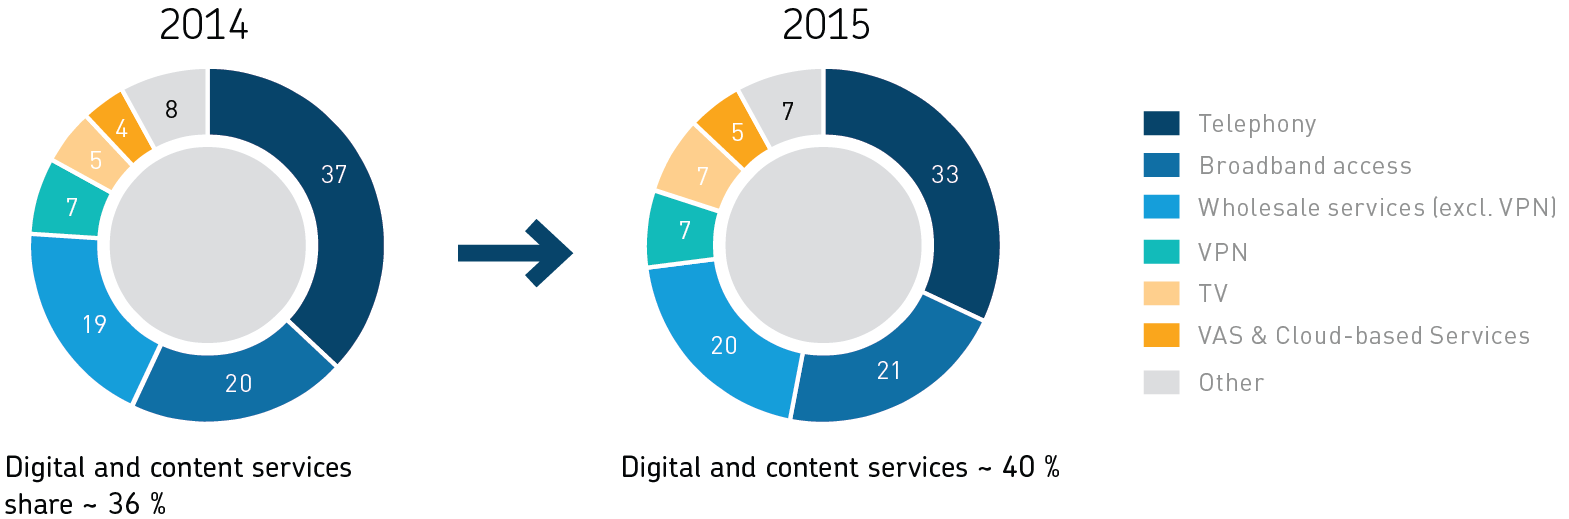 Digital and content services share by years